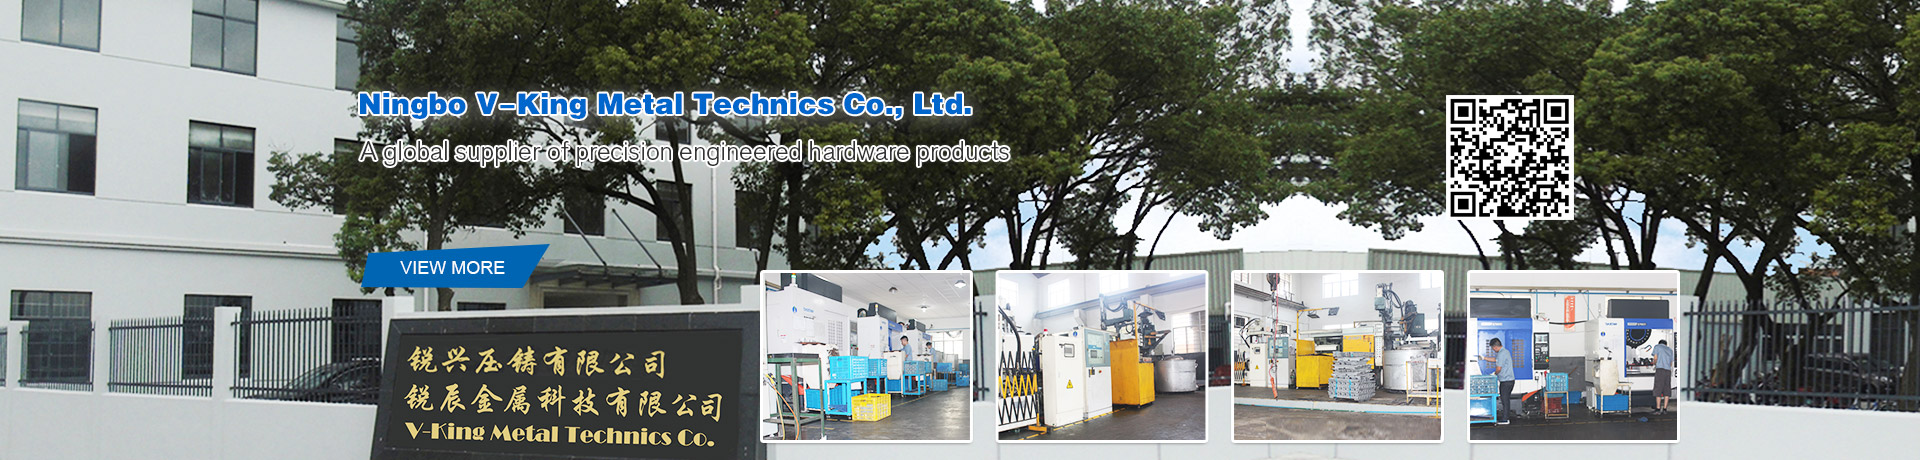 NIingbo Zhenhai Ruixing Die-casting Co.ltd